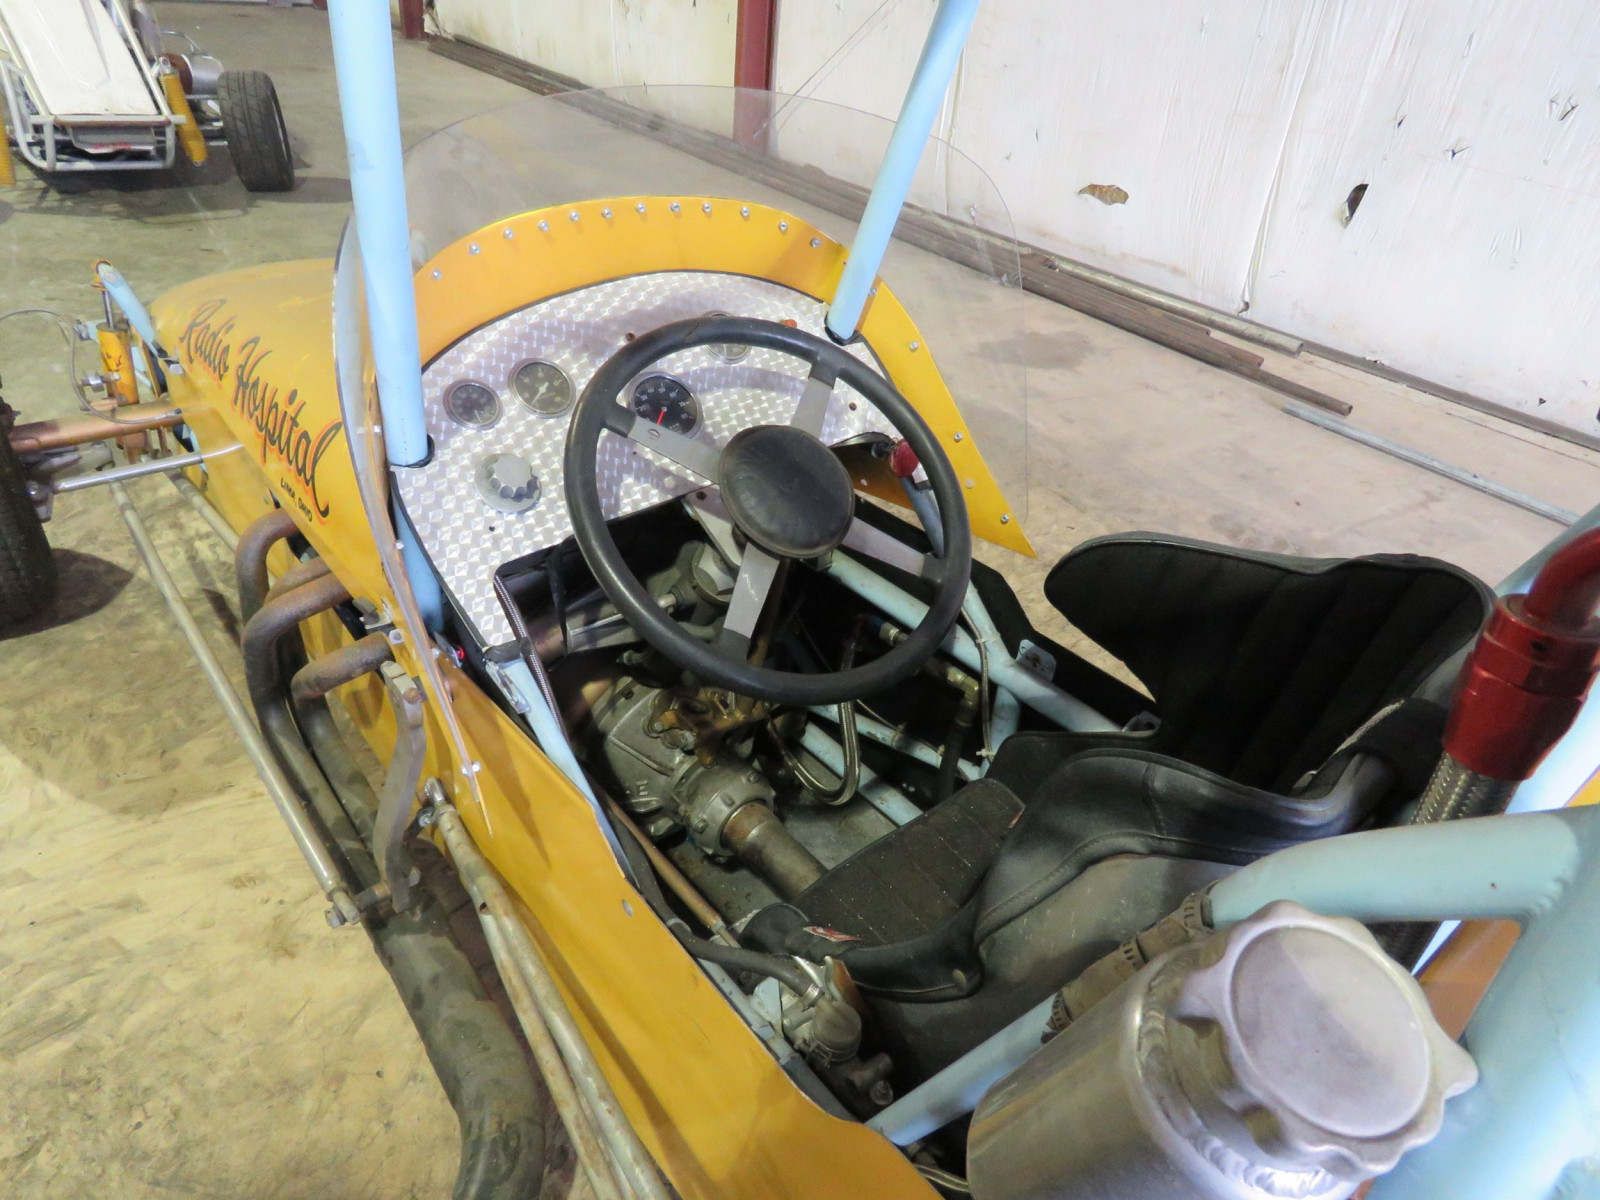 1972 fuel Injected Midget Race Car - Image 7